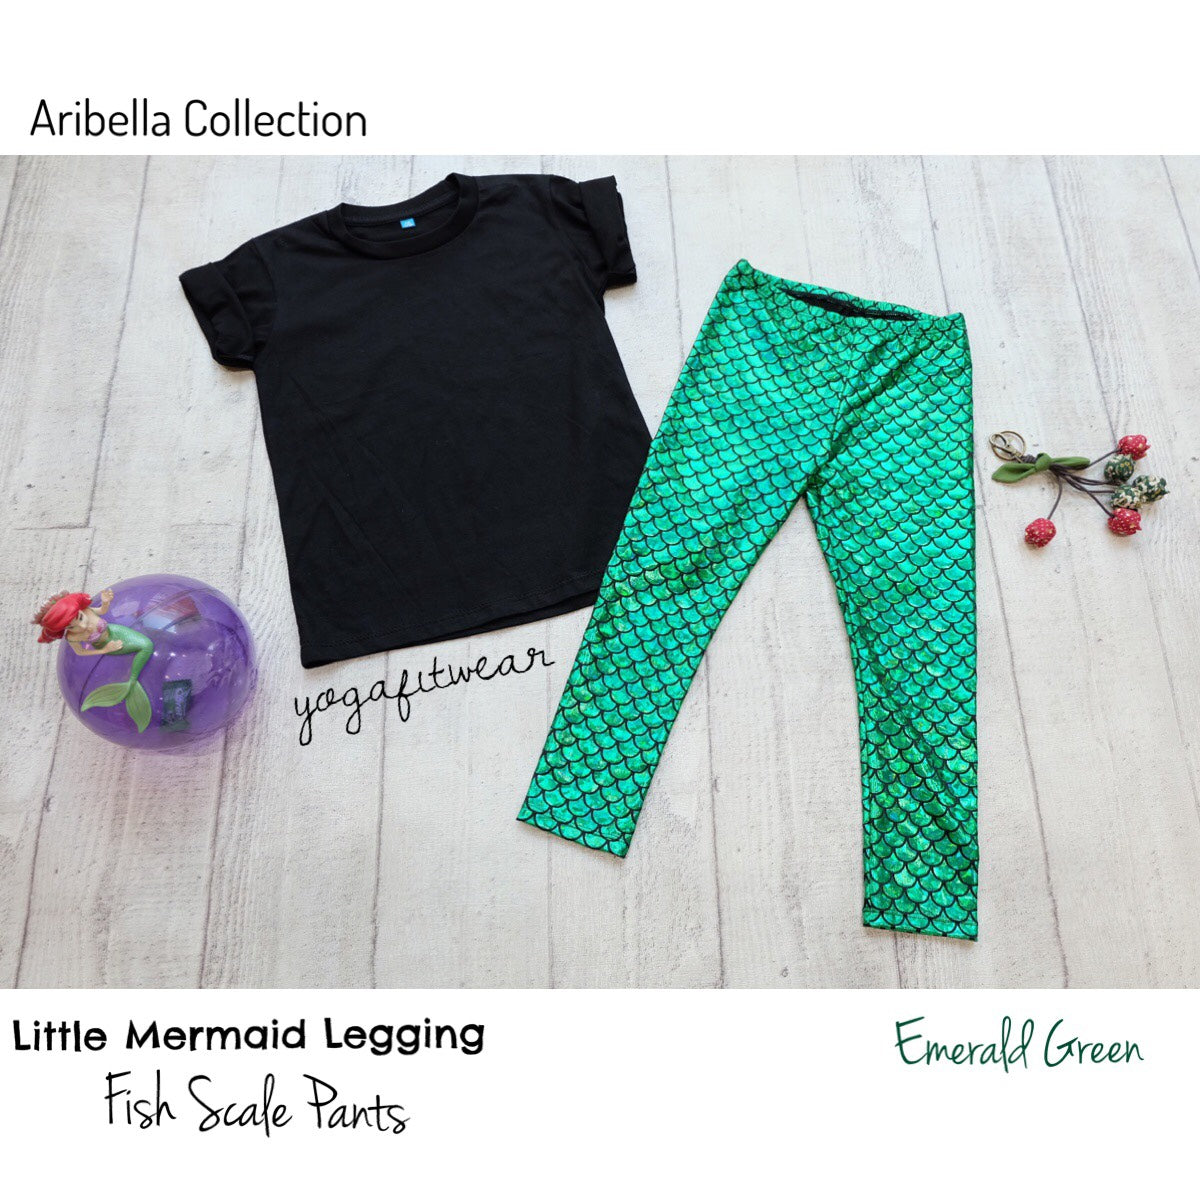 Yogafitwear - Little Mermaid Legging Fish Scale Pants (Emerald Green) (NA00002)